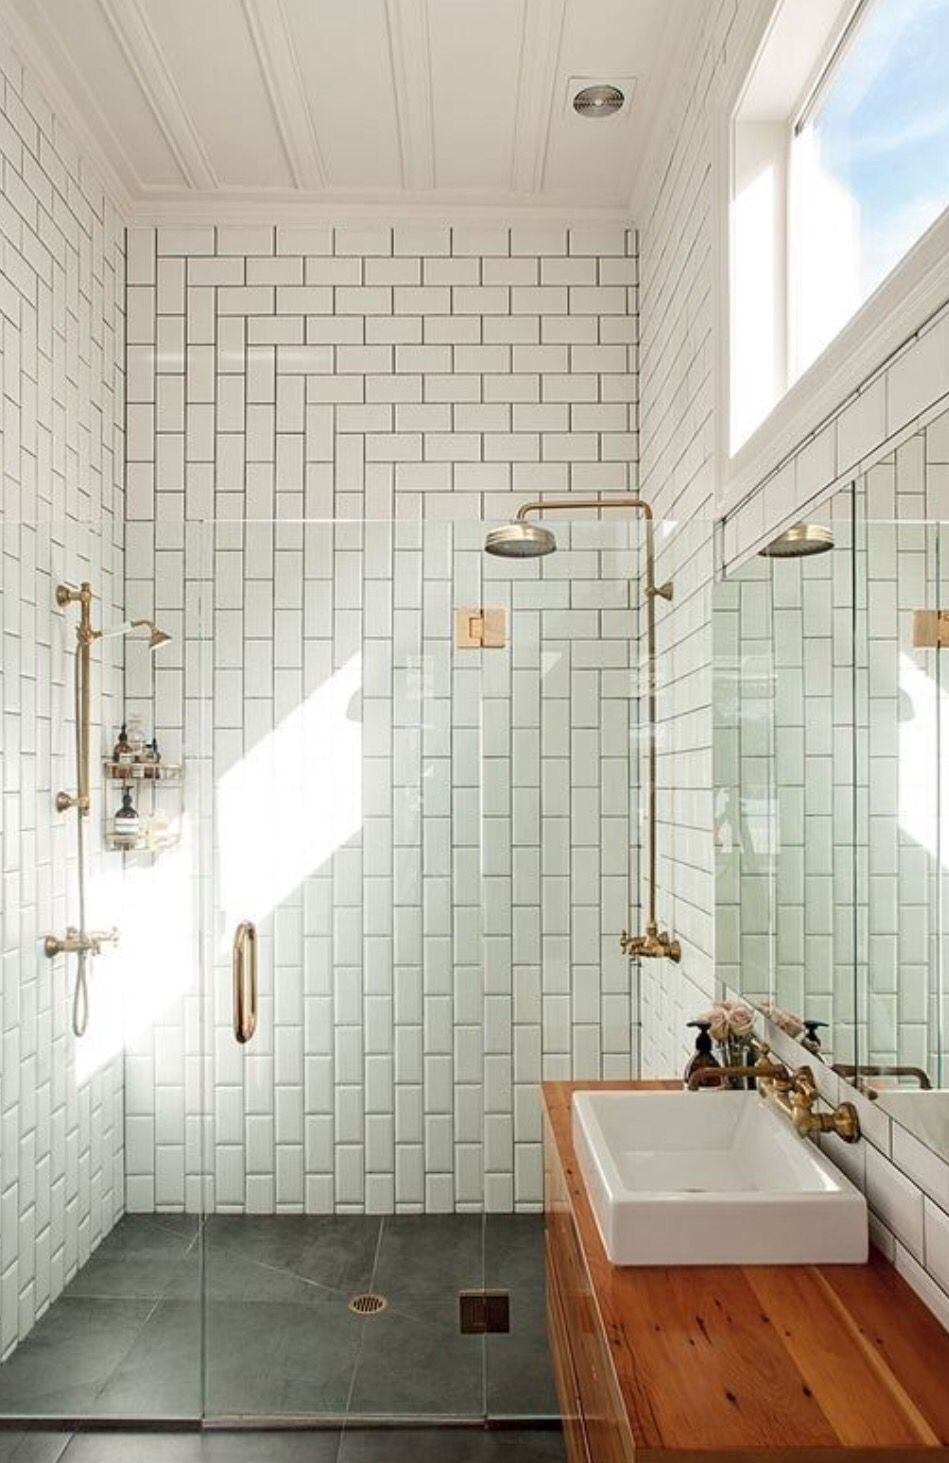 subway tile... | like | Pinterest | Subway tiles, House and Interiors